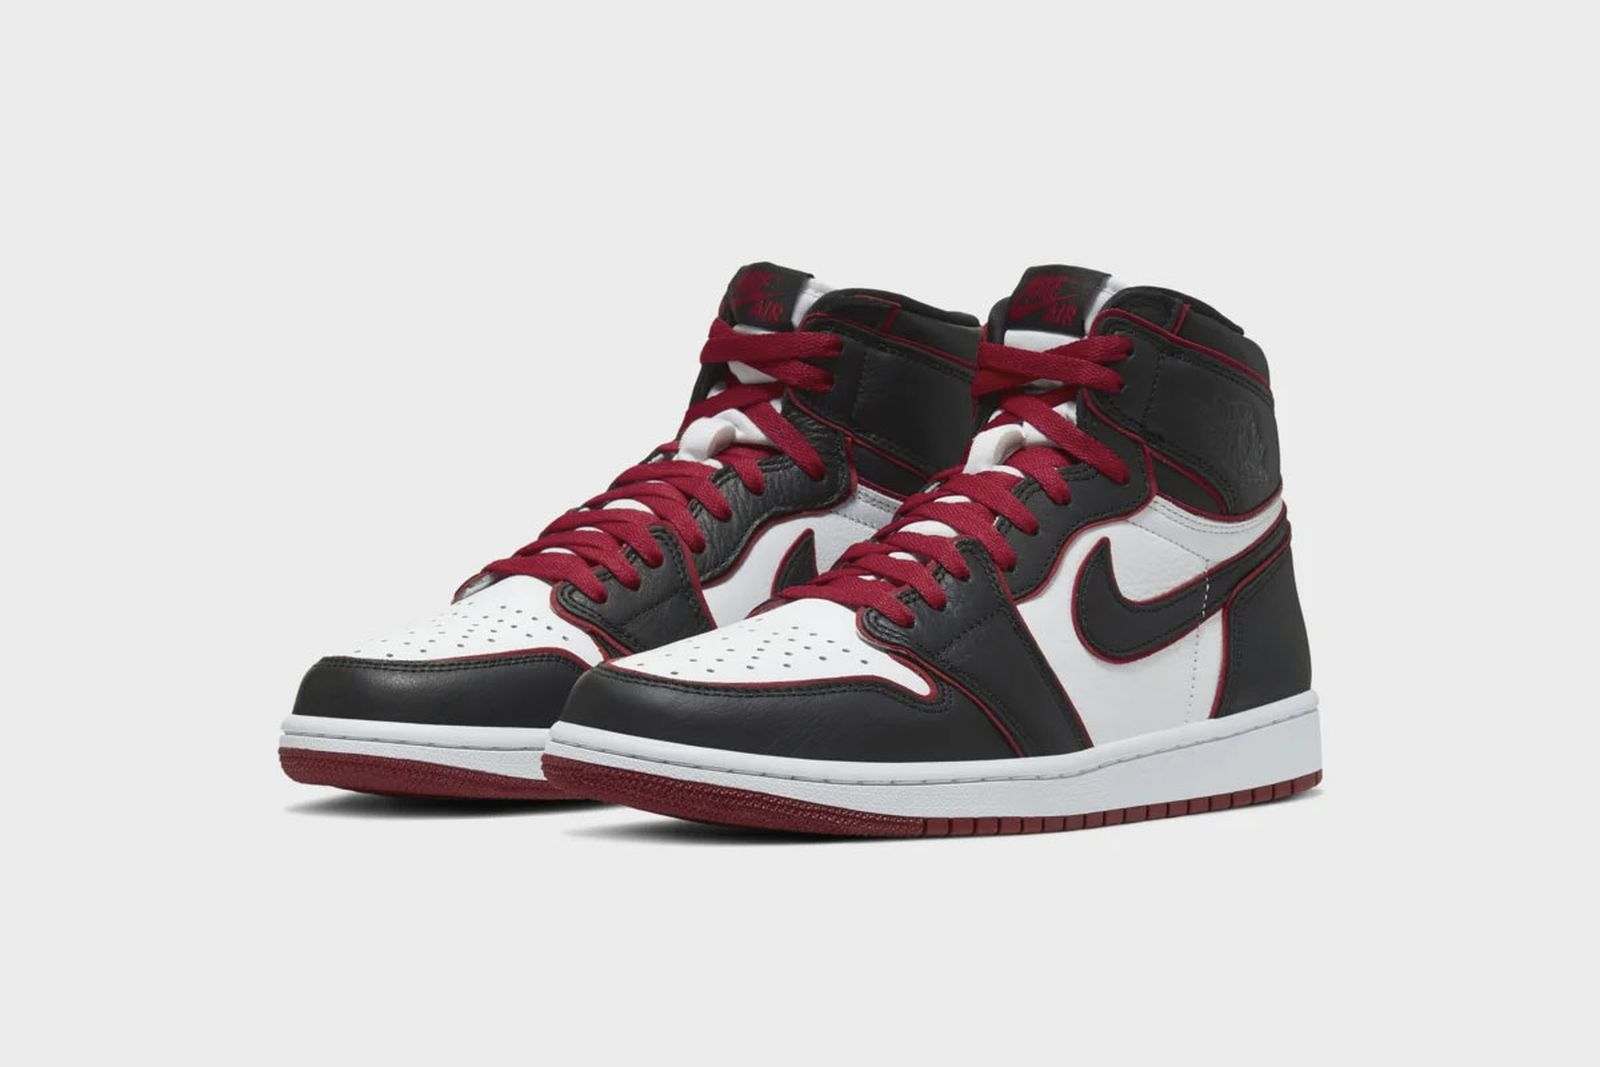 air-jordan-1-retro-high-og-bloodline-release-date-price-11